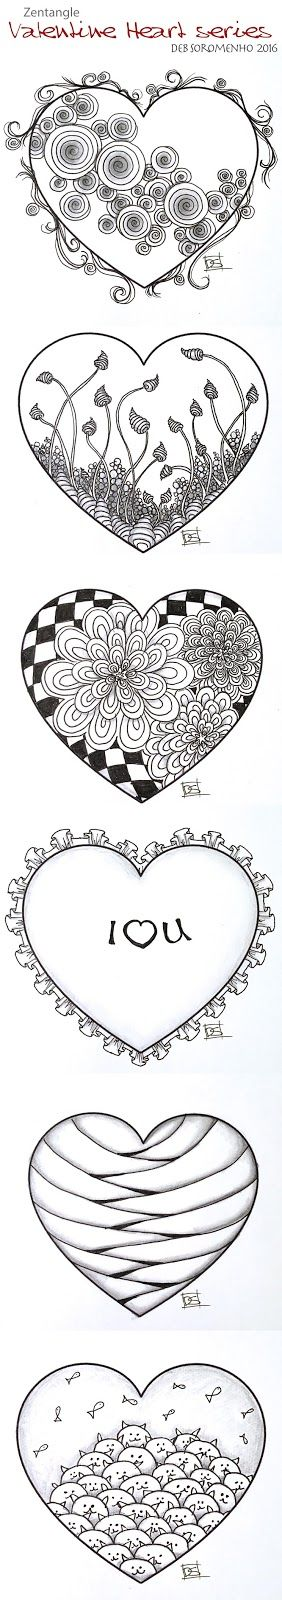 ❤⊰❁⊱ Mandala⊰❁⊱ Zentangle Valentine's Heart Series Designs 2016 | Always Choose the Window Seat